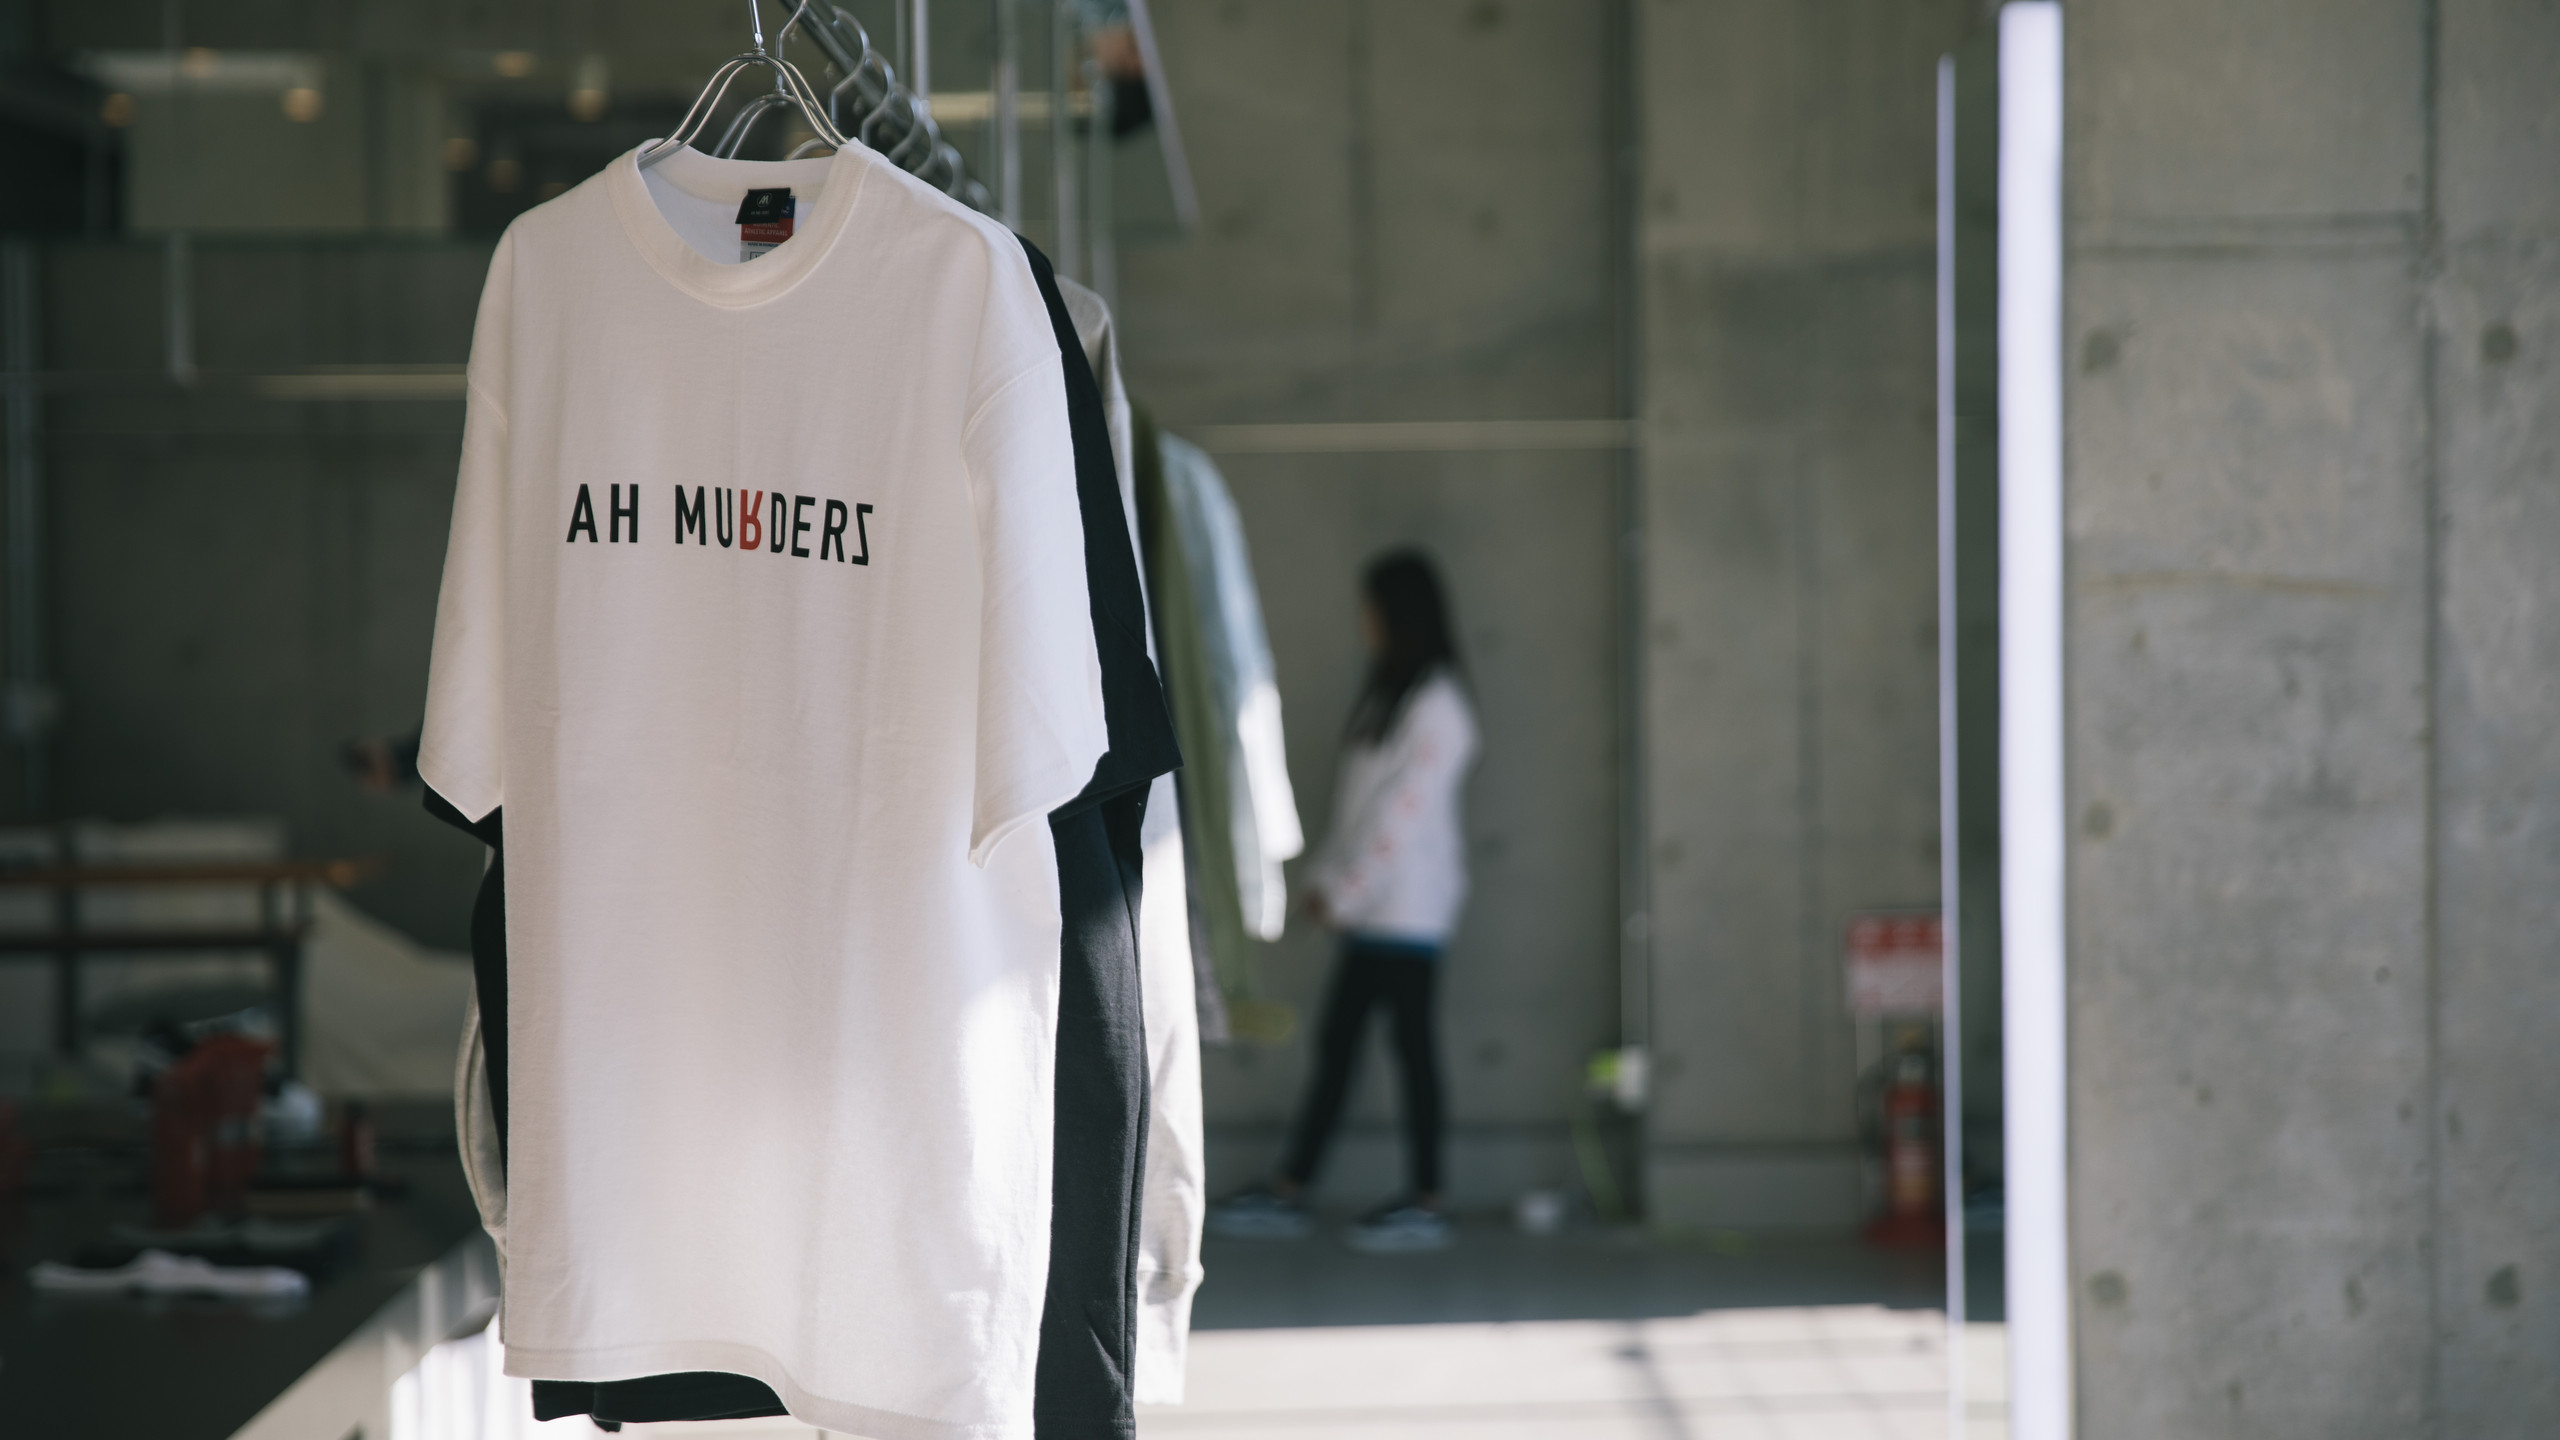 AH MURDERZ POP UP STORE